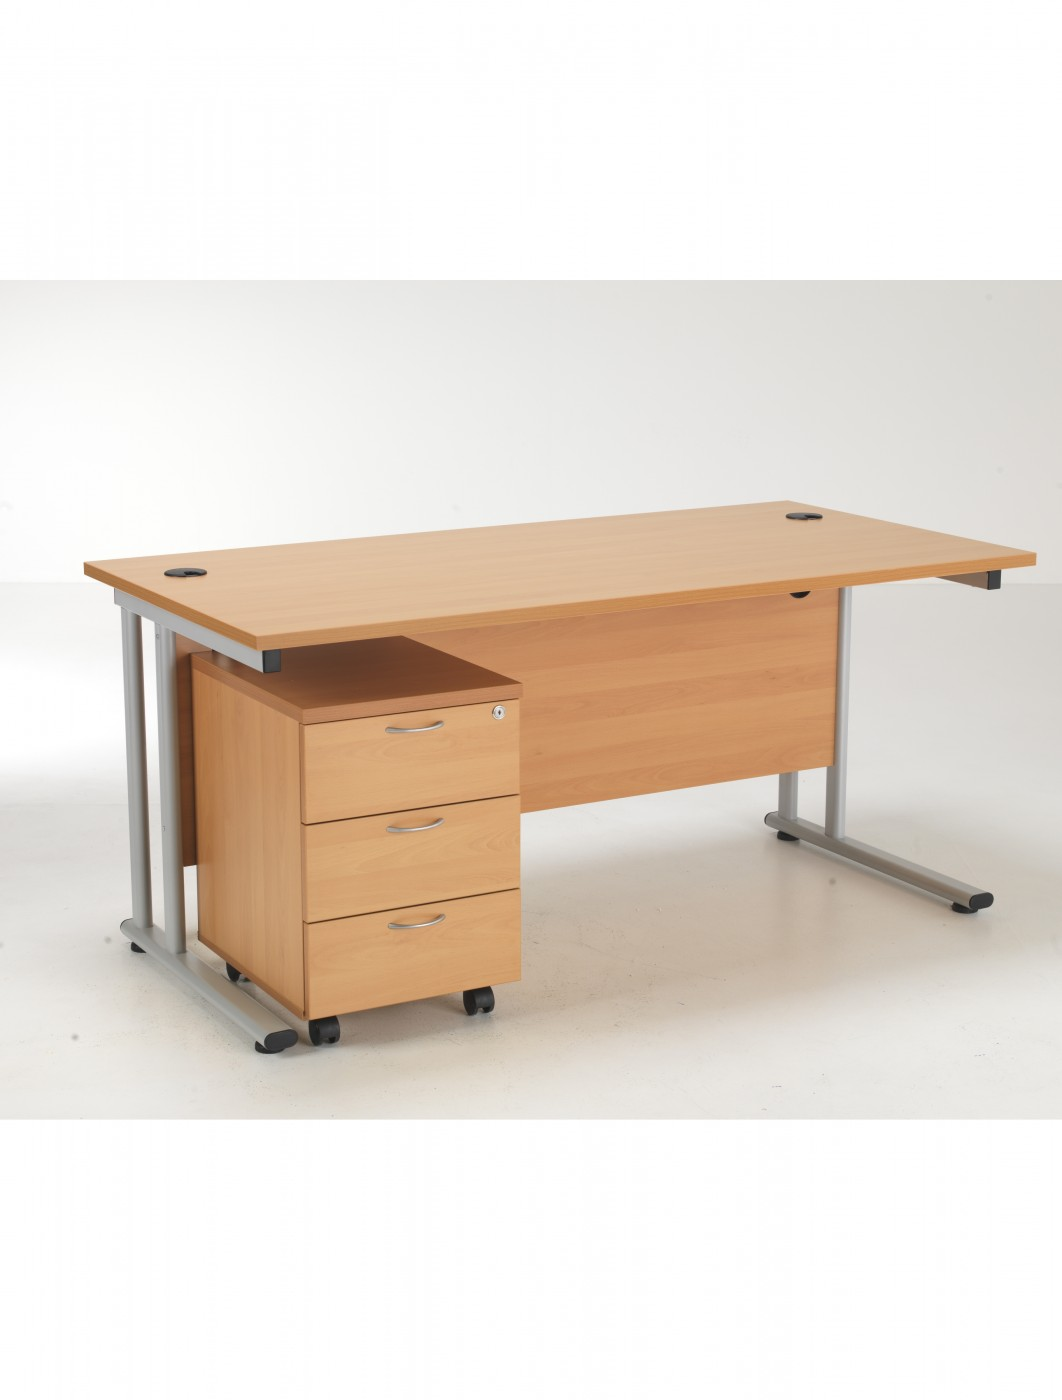 Tc desk and pedestal lite1280bund3be 121 office furniture - Mobile office desk ...